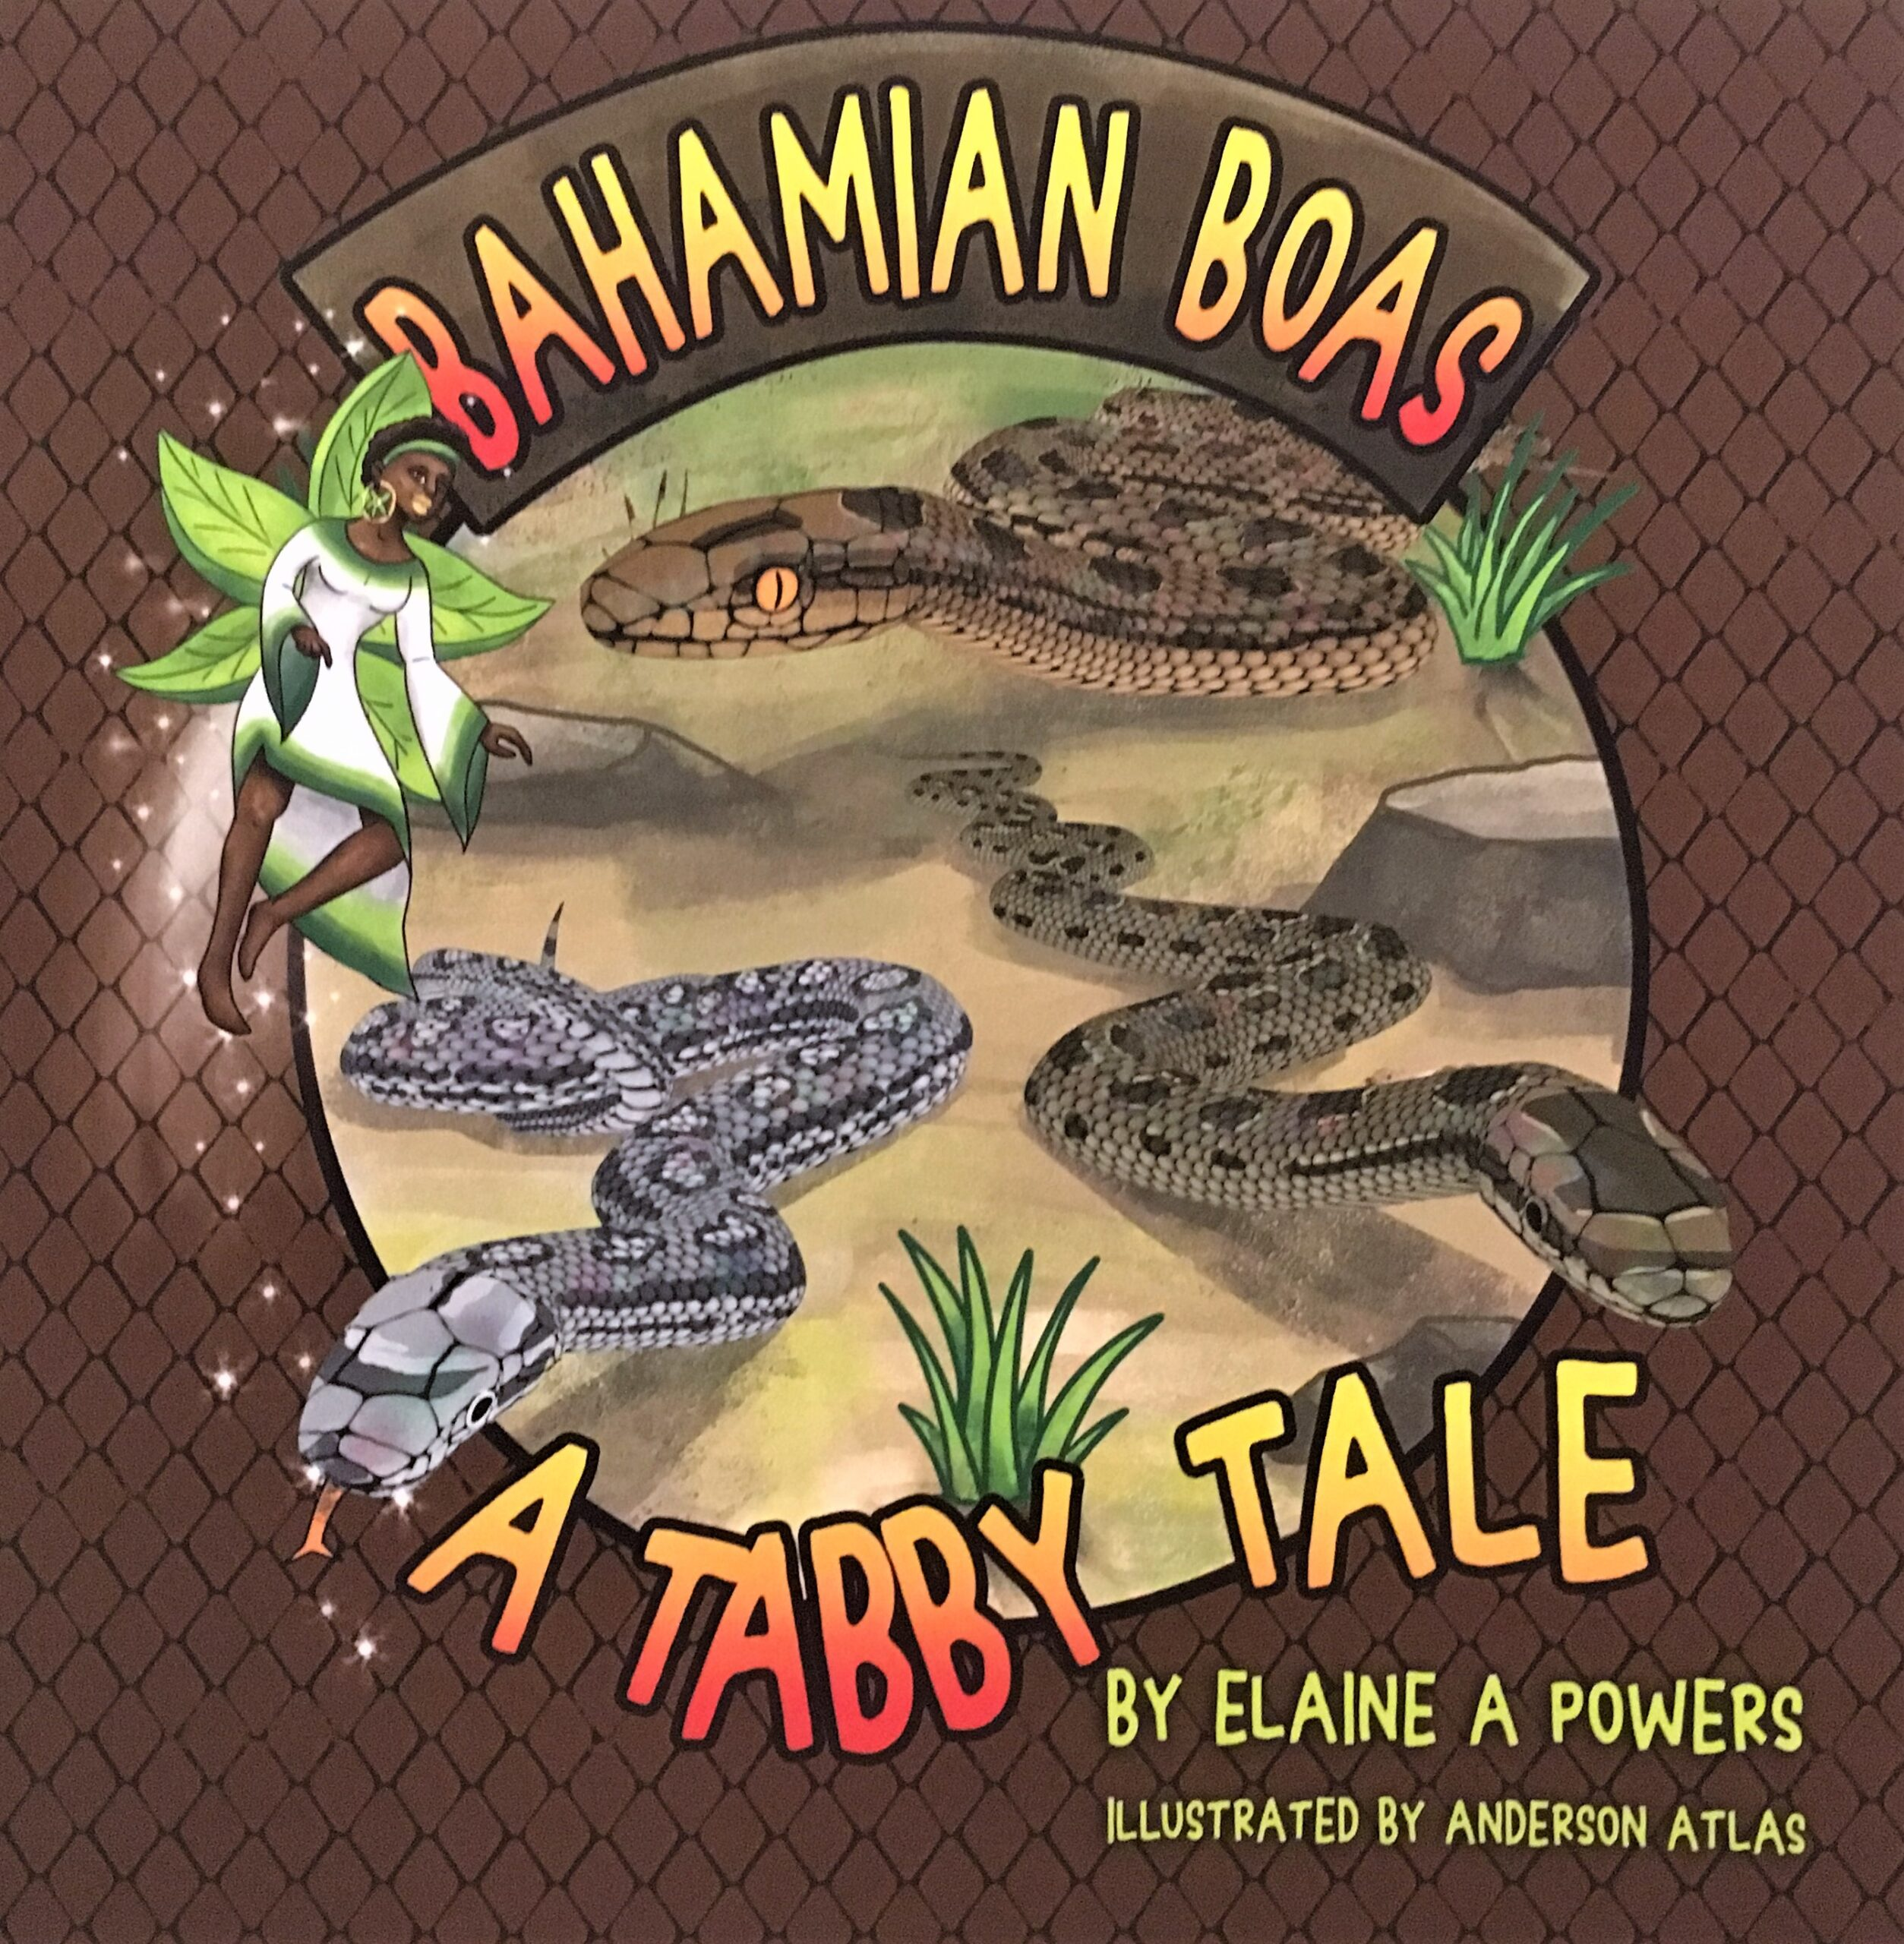 A children's book cover, brown background, orange and yellow lettering, with images of snakes from the Bahamas